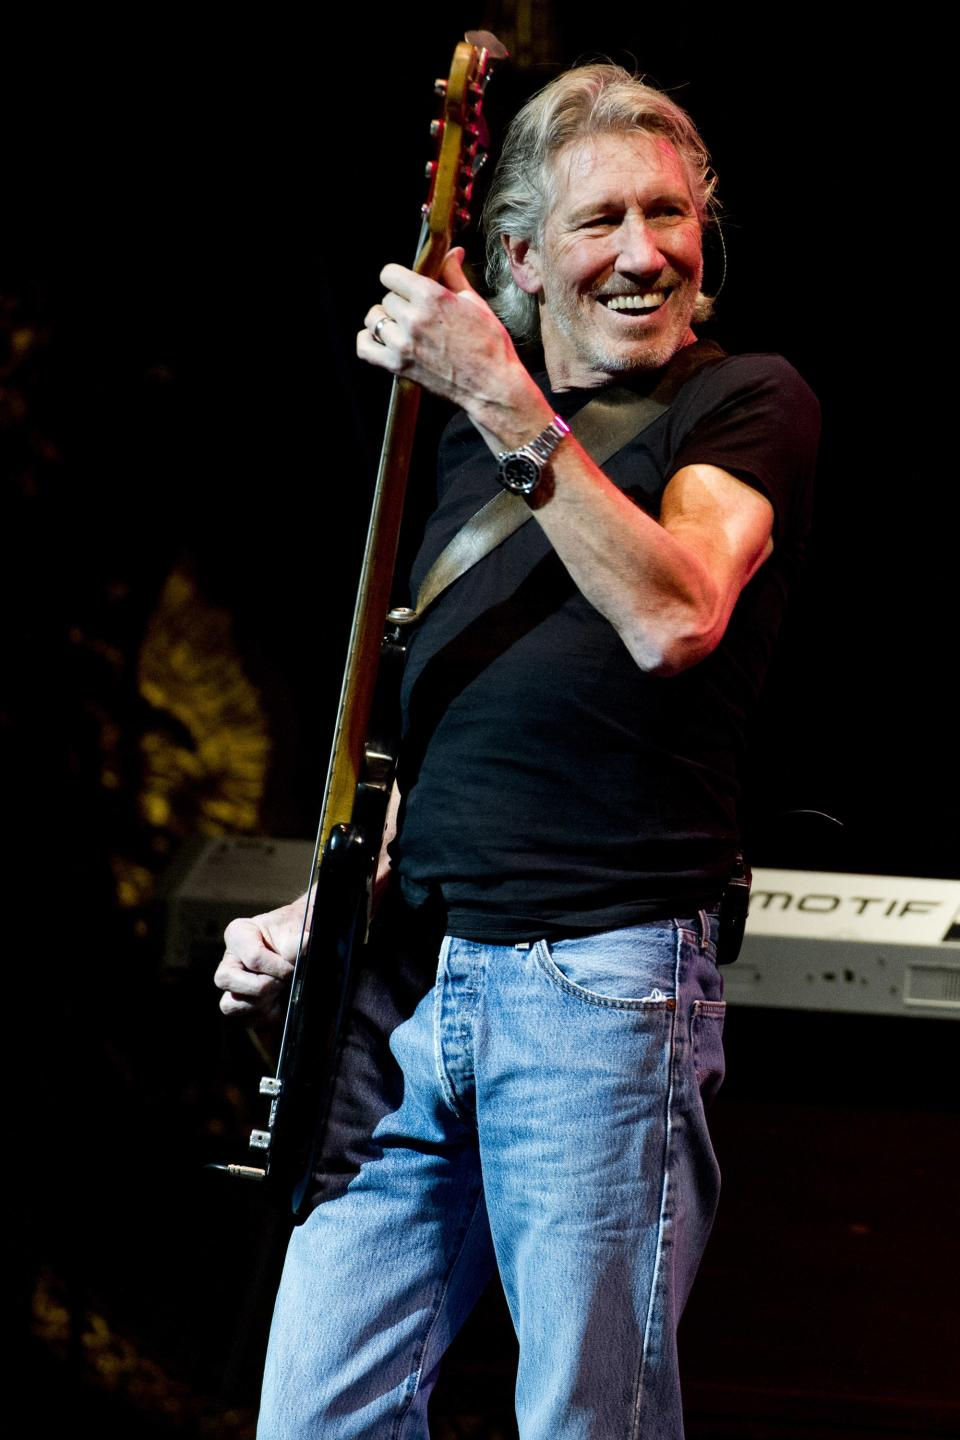 Roger Waters performs at the 6th Annual Stand Up For Heroes benefit concert for injured service members and veterans on Thursday, Nov. 8, 2012 in New York. (Photo by Charles Sykes/Invision/AP)